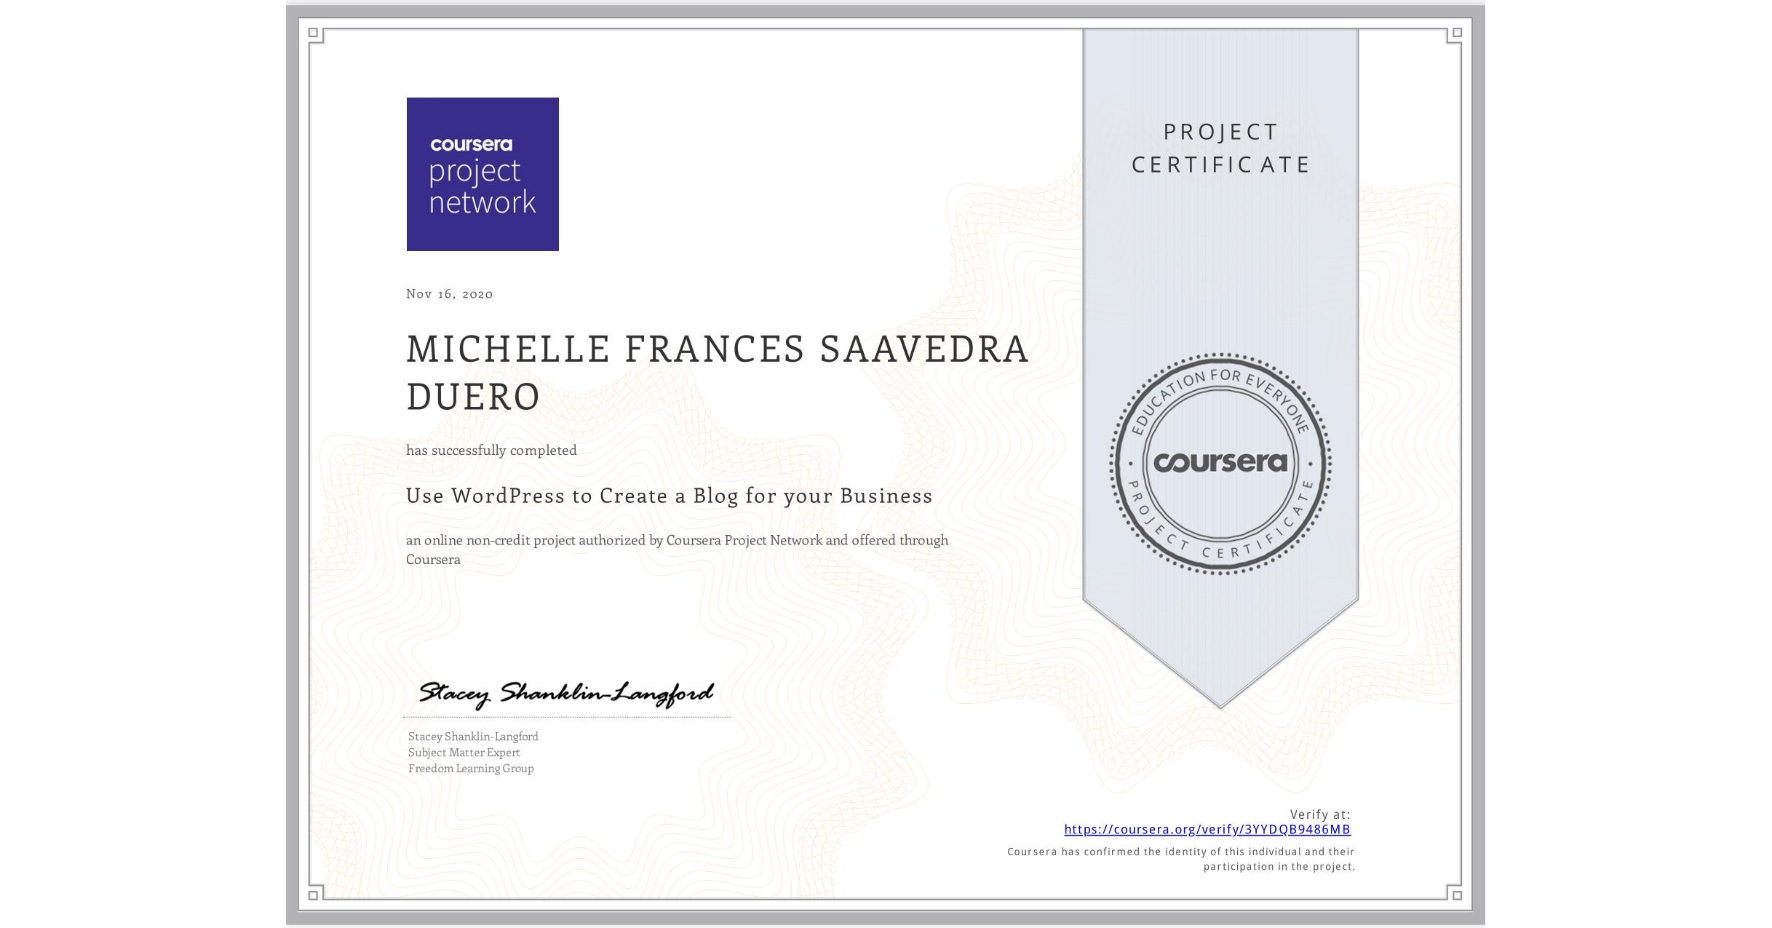 View certificate for MICHELLE FRANCES  SAAVEDRA DUERO, Use WordPress to Create a Blog for your Business, an online non-credit course authorized by Coursera Project Network and offered through Coursera